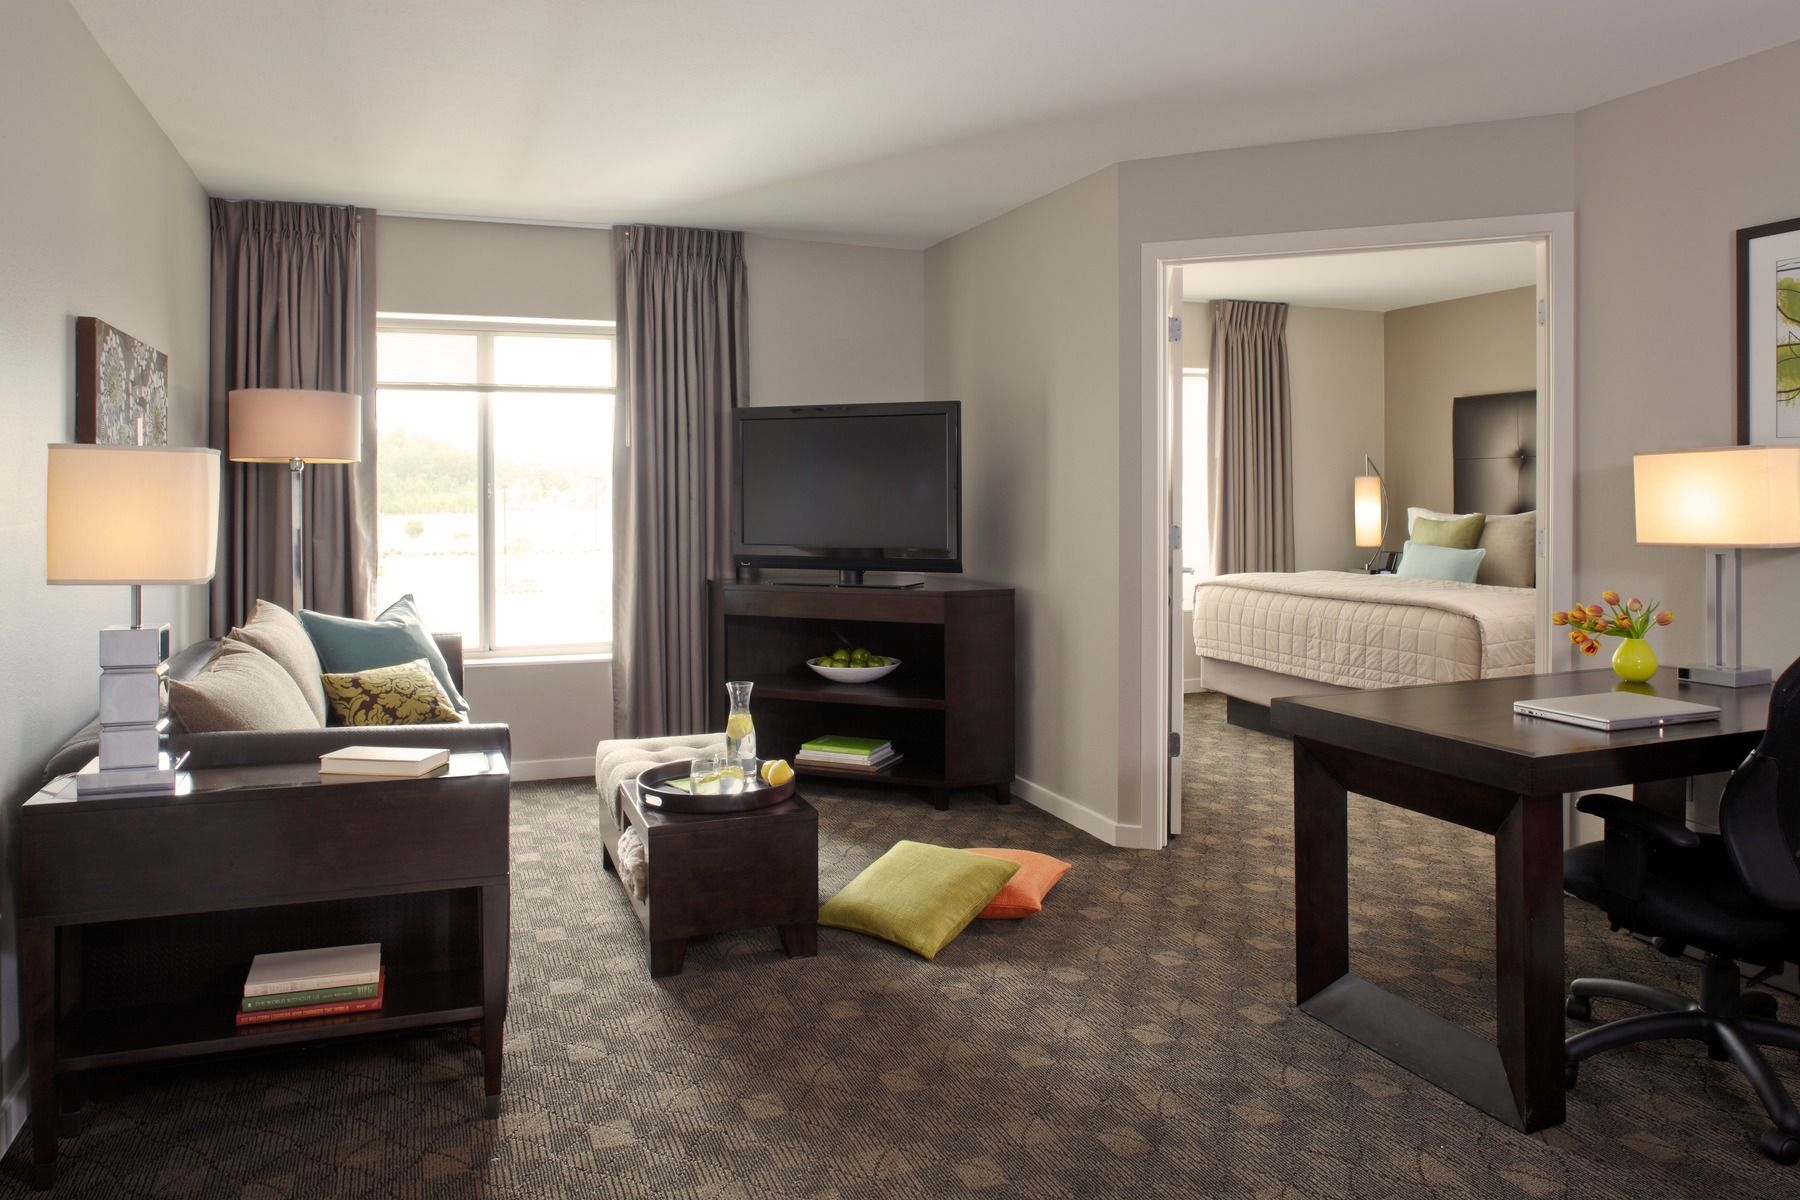 Our one bedroom suites at HYATT house make for a spacious